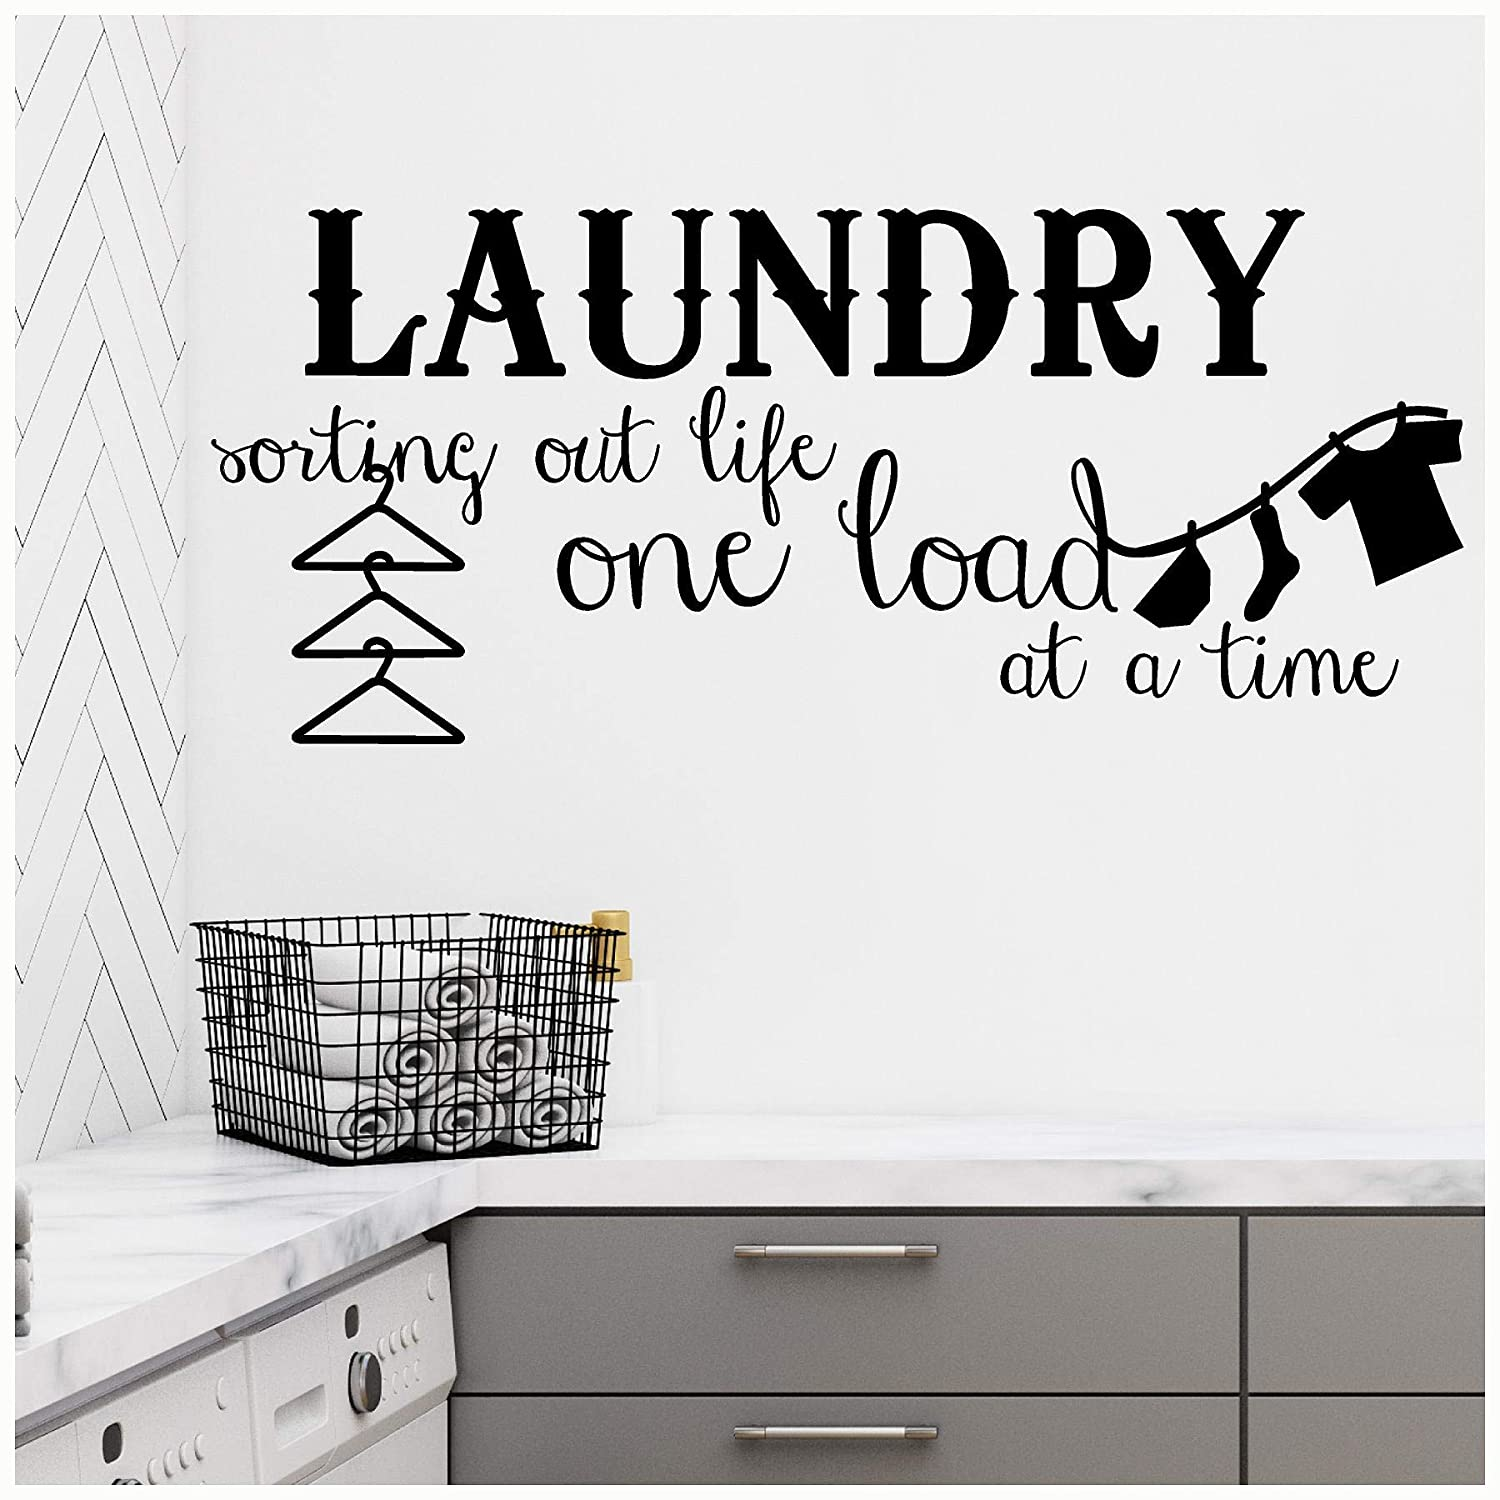 Wall Sayings Vinyl Lettering Laundry Sorting Out Life One Load at a Time Vinyl Lettering Wall Decal Sticker 16H x 38L, Black